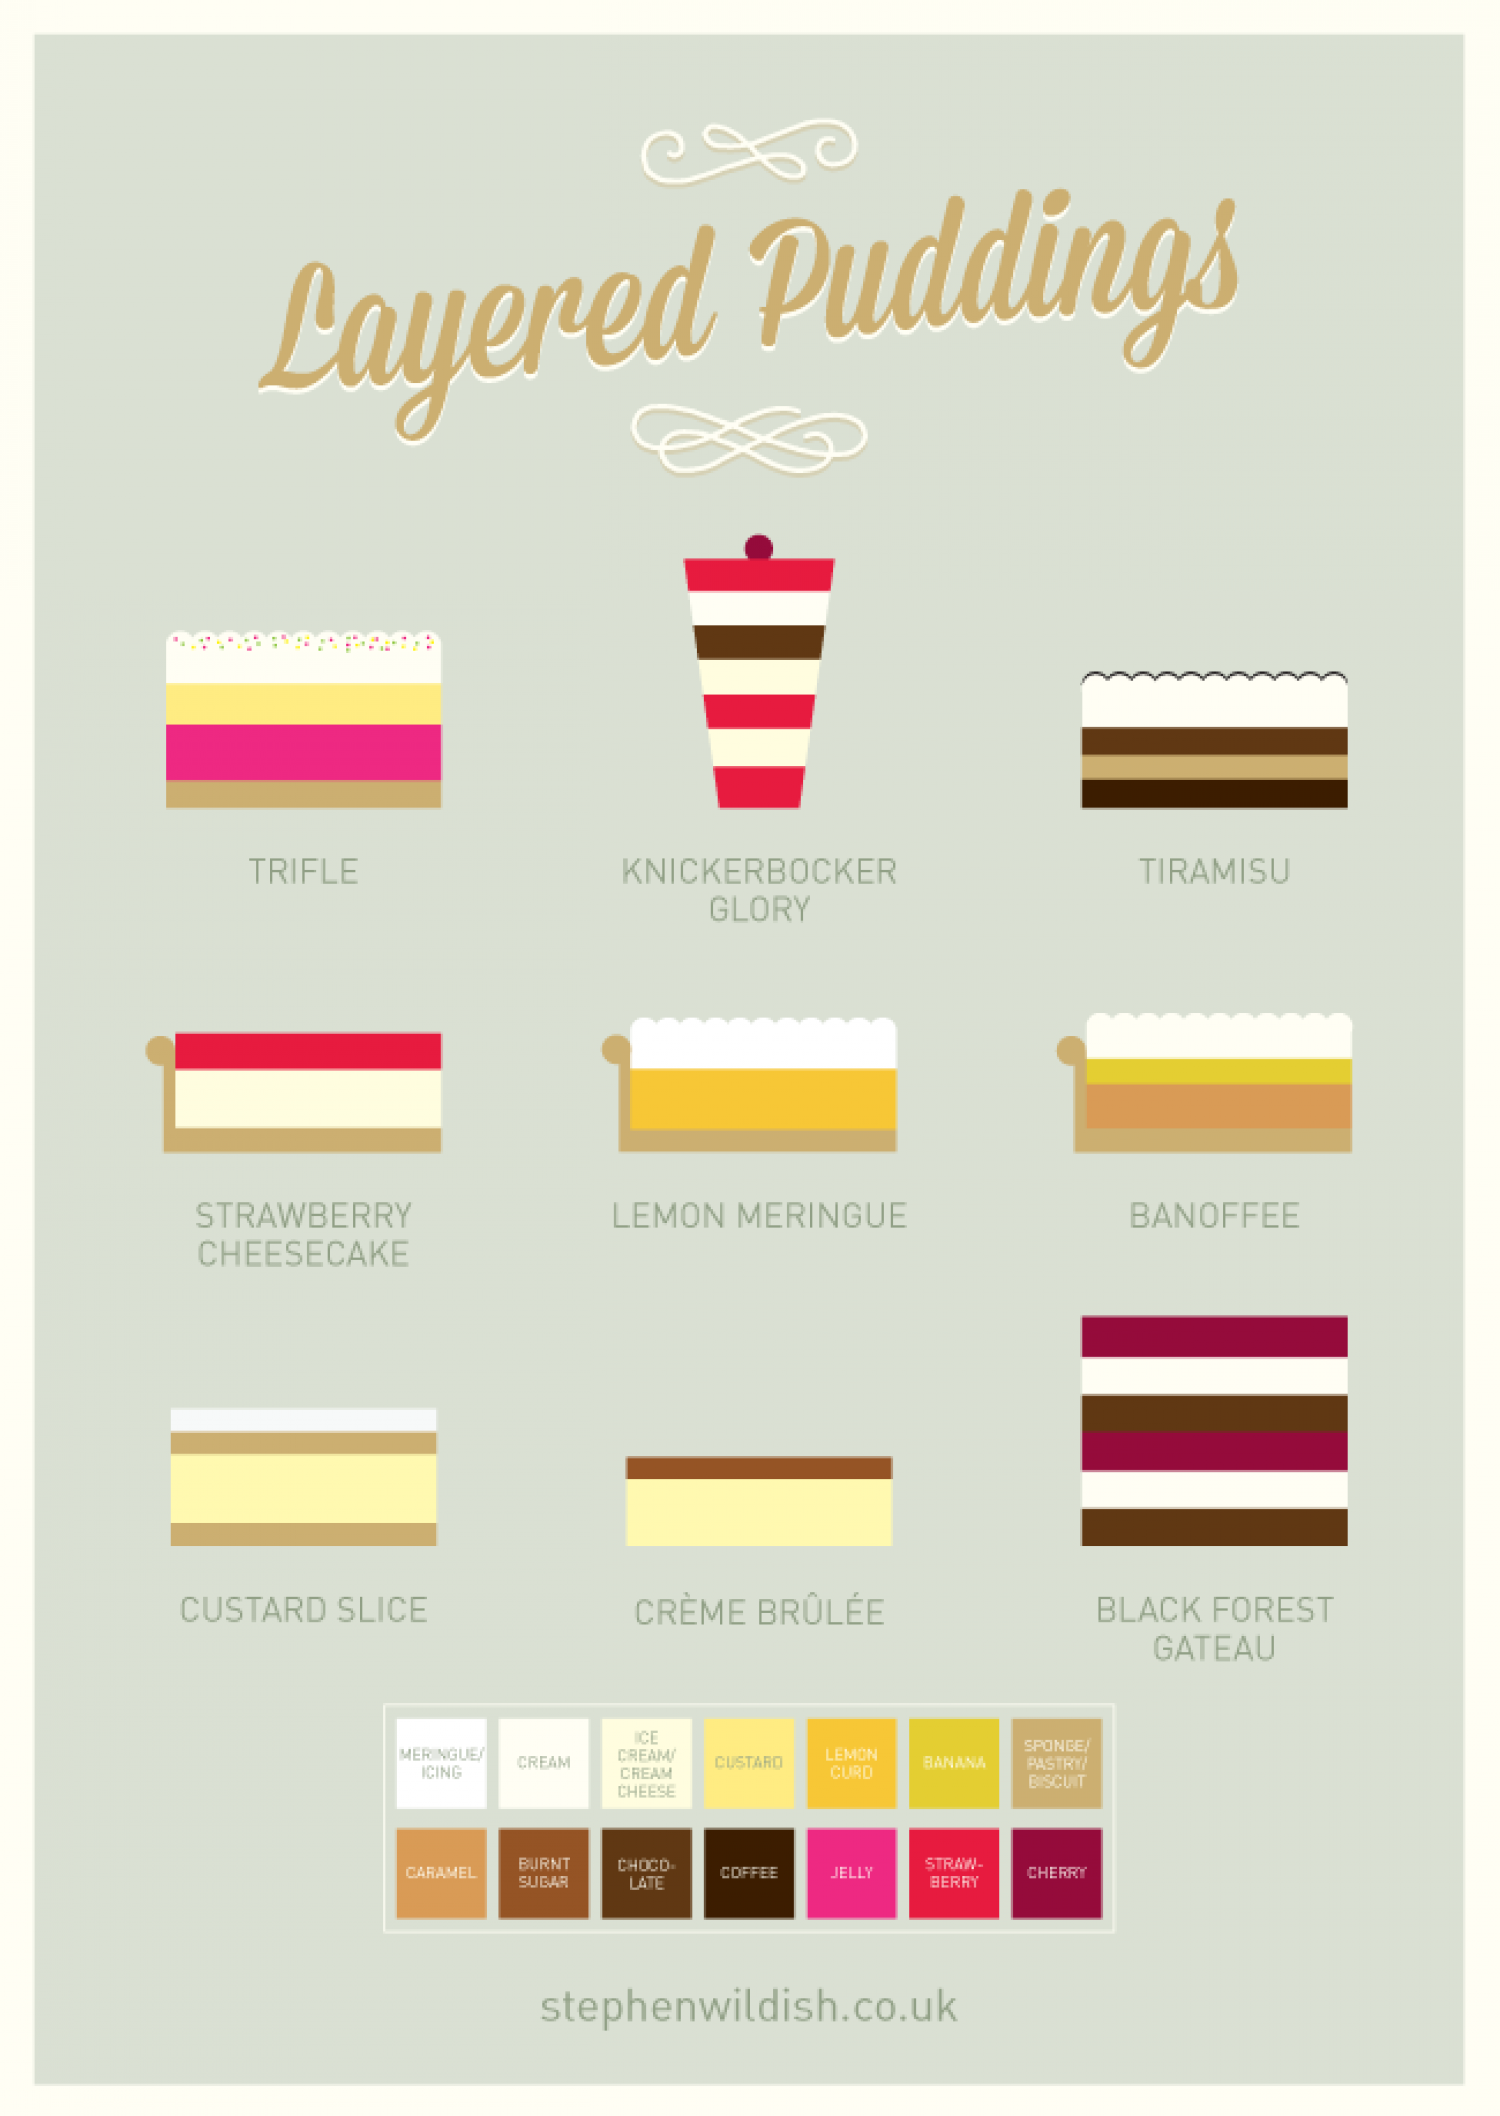 Layered Puddings Infographic